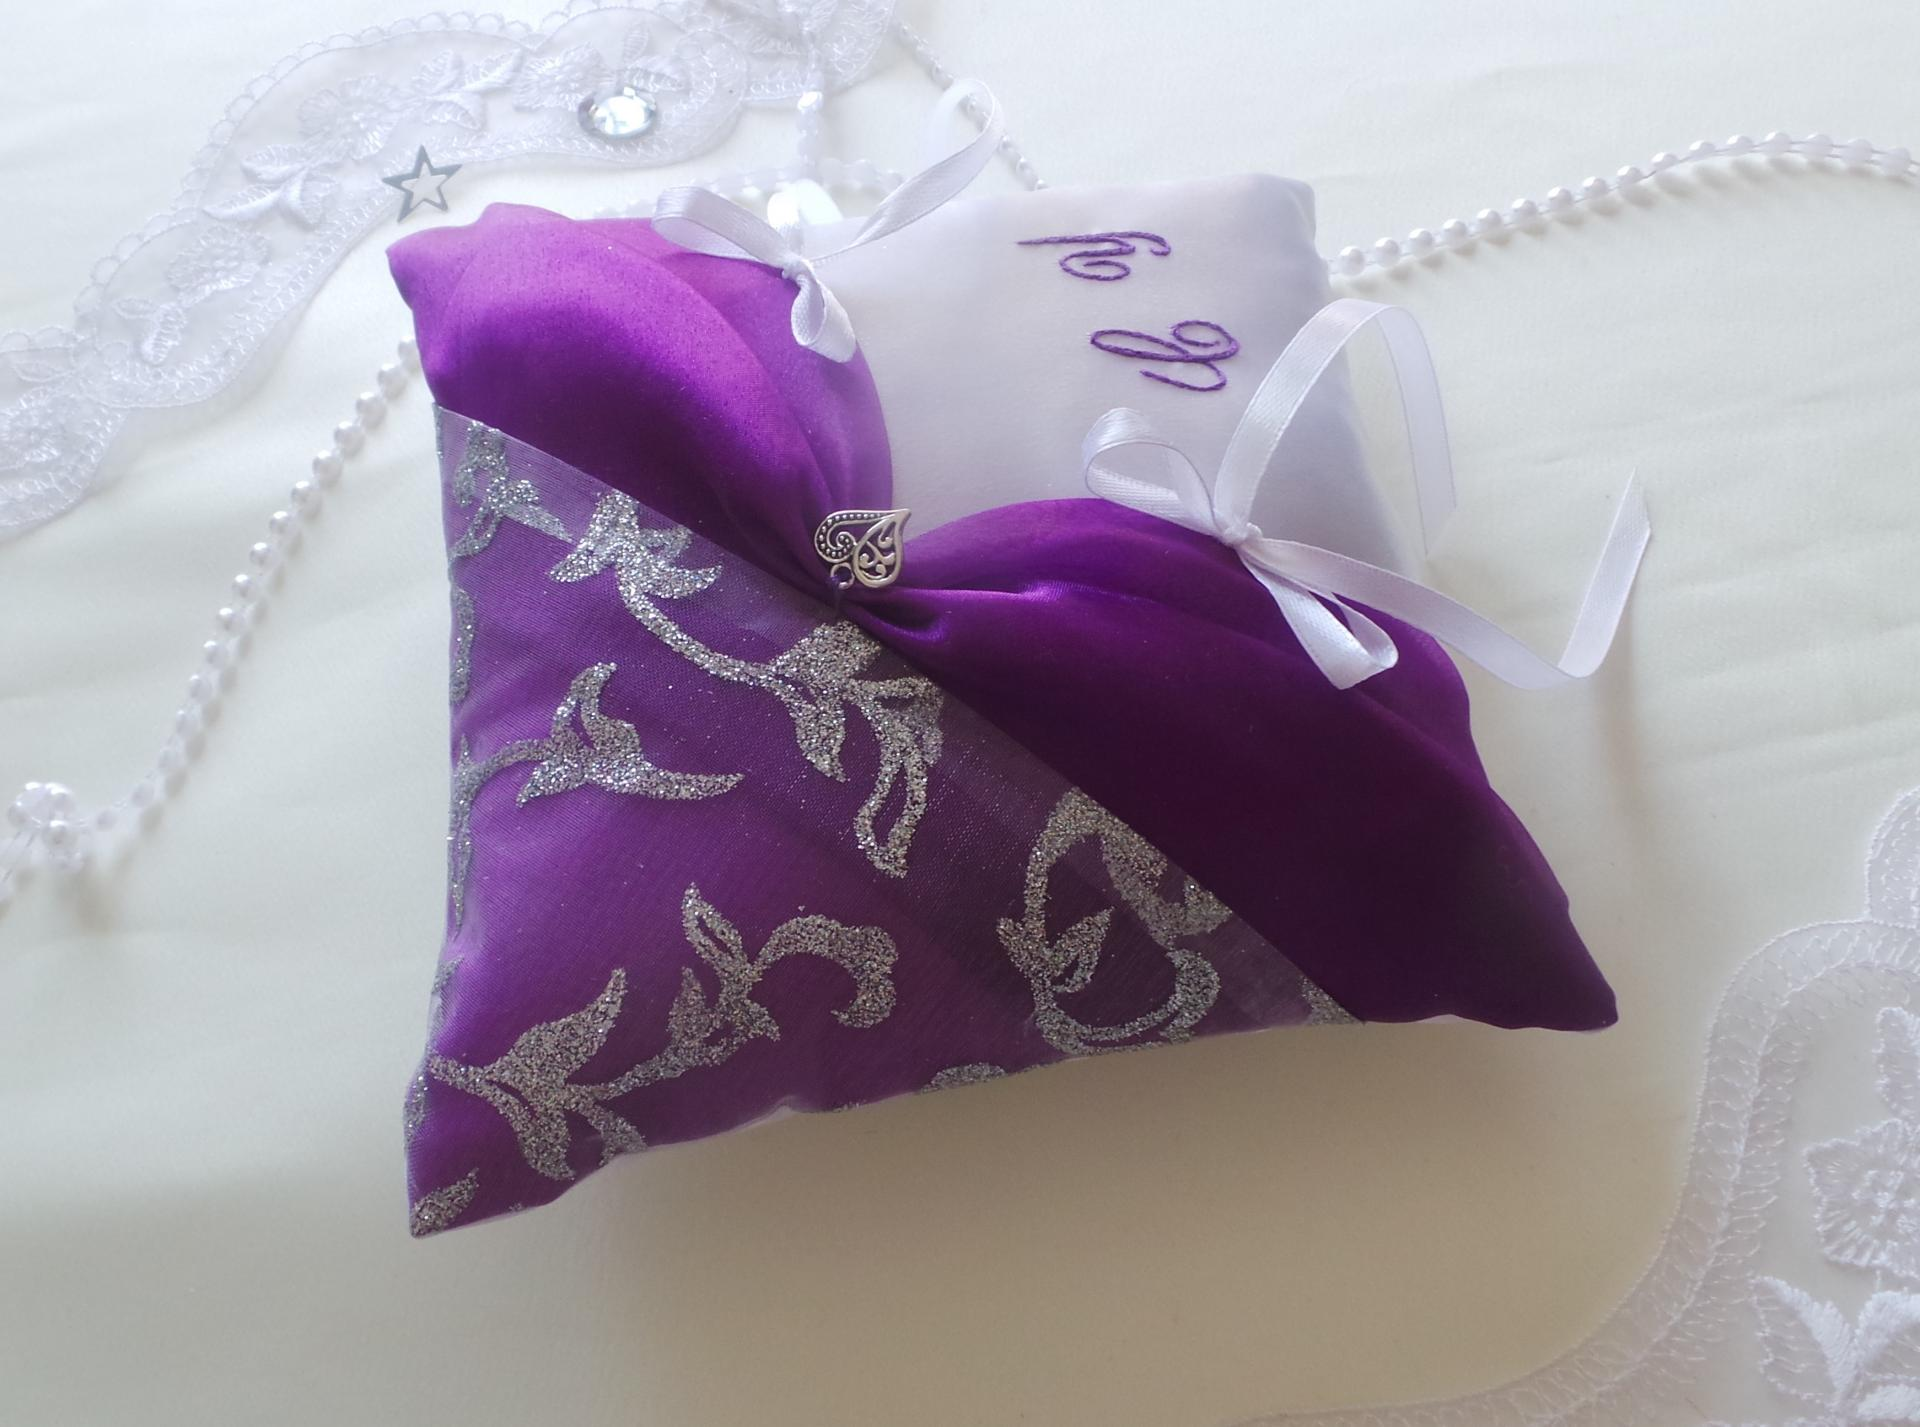 Coussin mariage violet prune argent